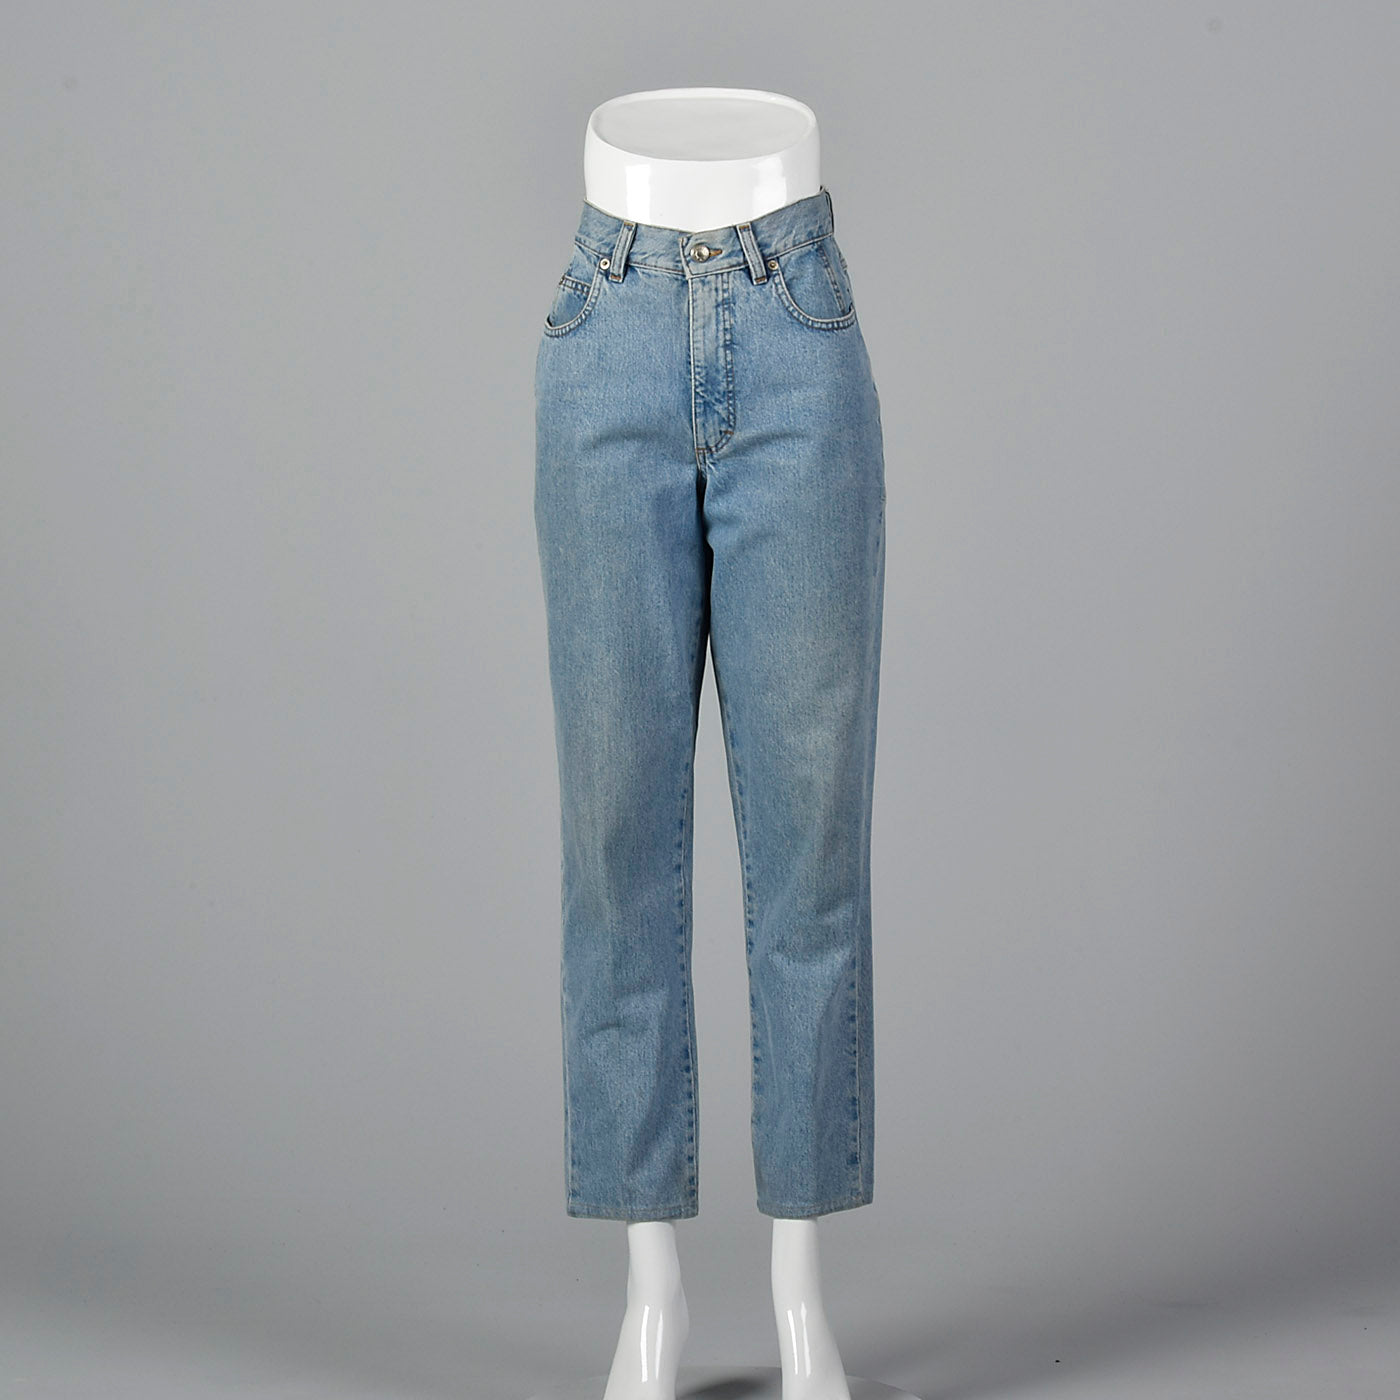 1990s Mom Jeans Medium Wash with Tapered Leg